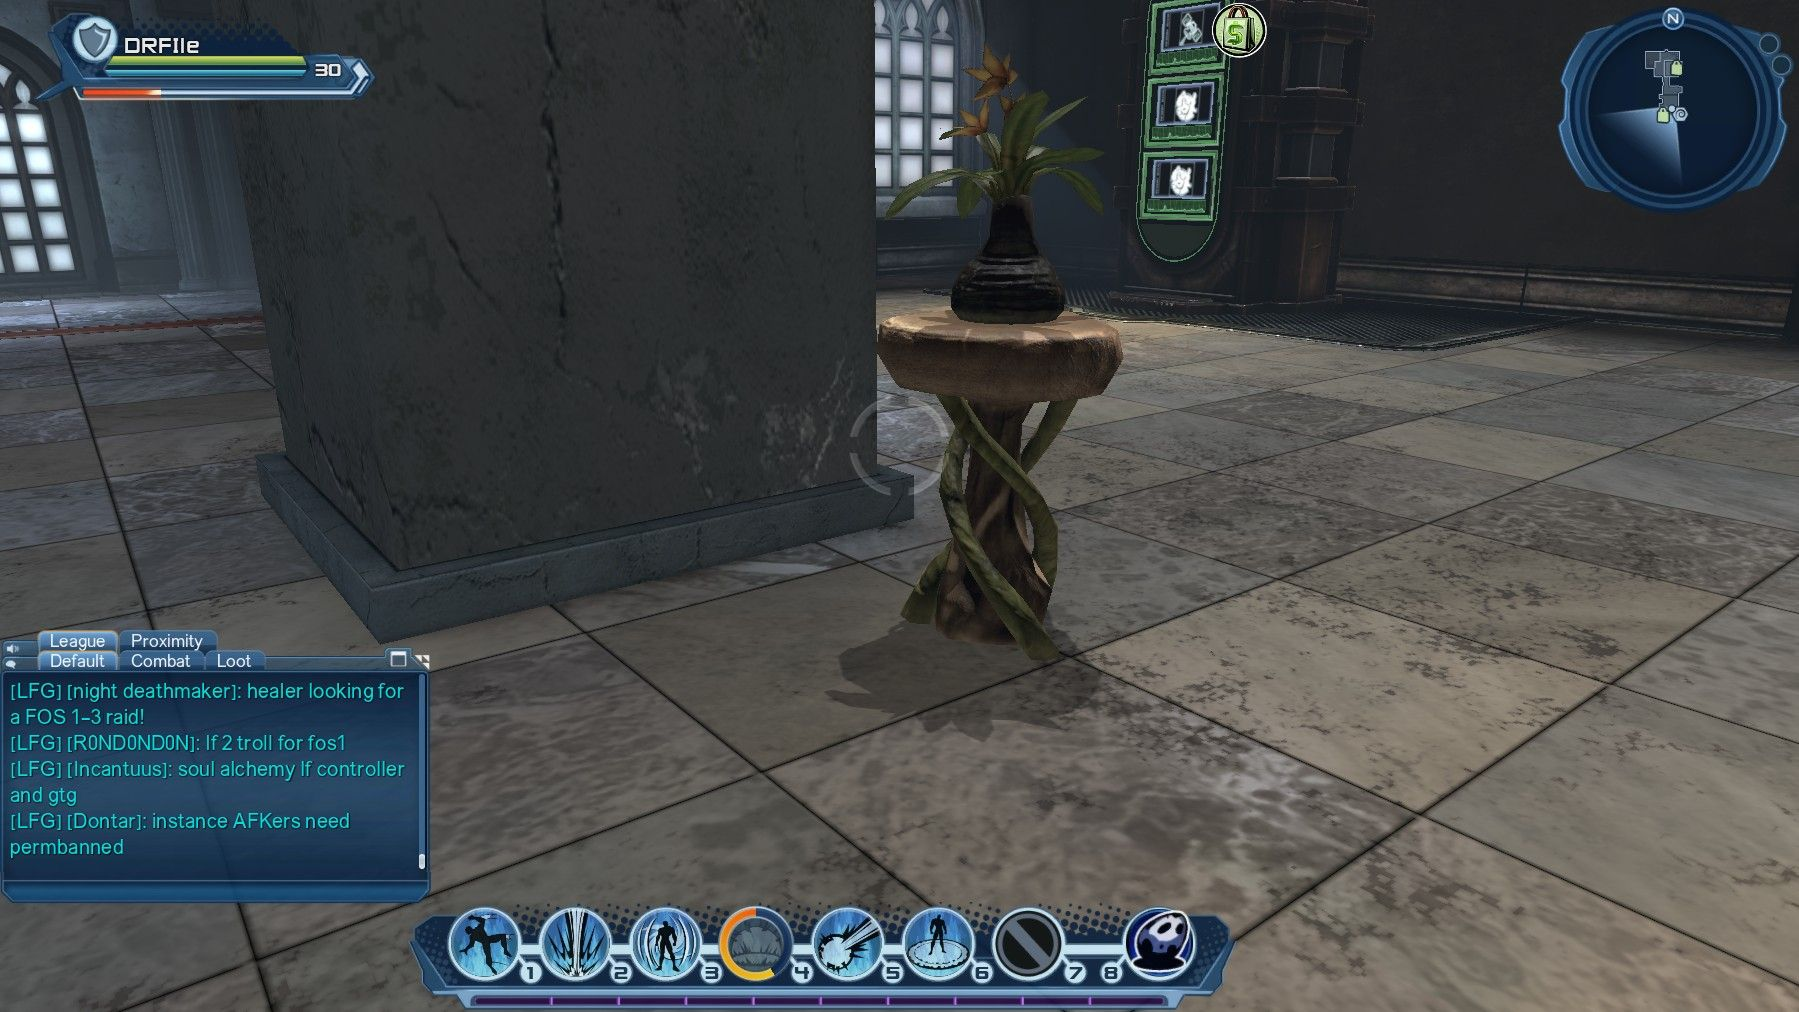 dcuo roulette table casino portal gnarled nightstand furniture occult accent location blackjack basic strategy decks single deck extra slots learn ligne free neptune anglais best